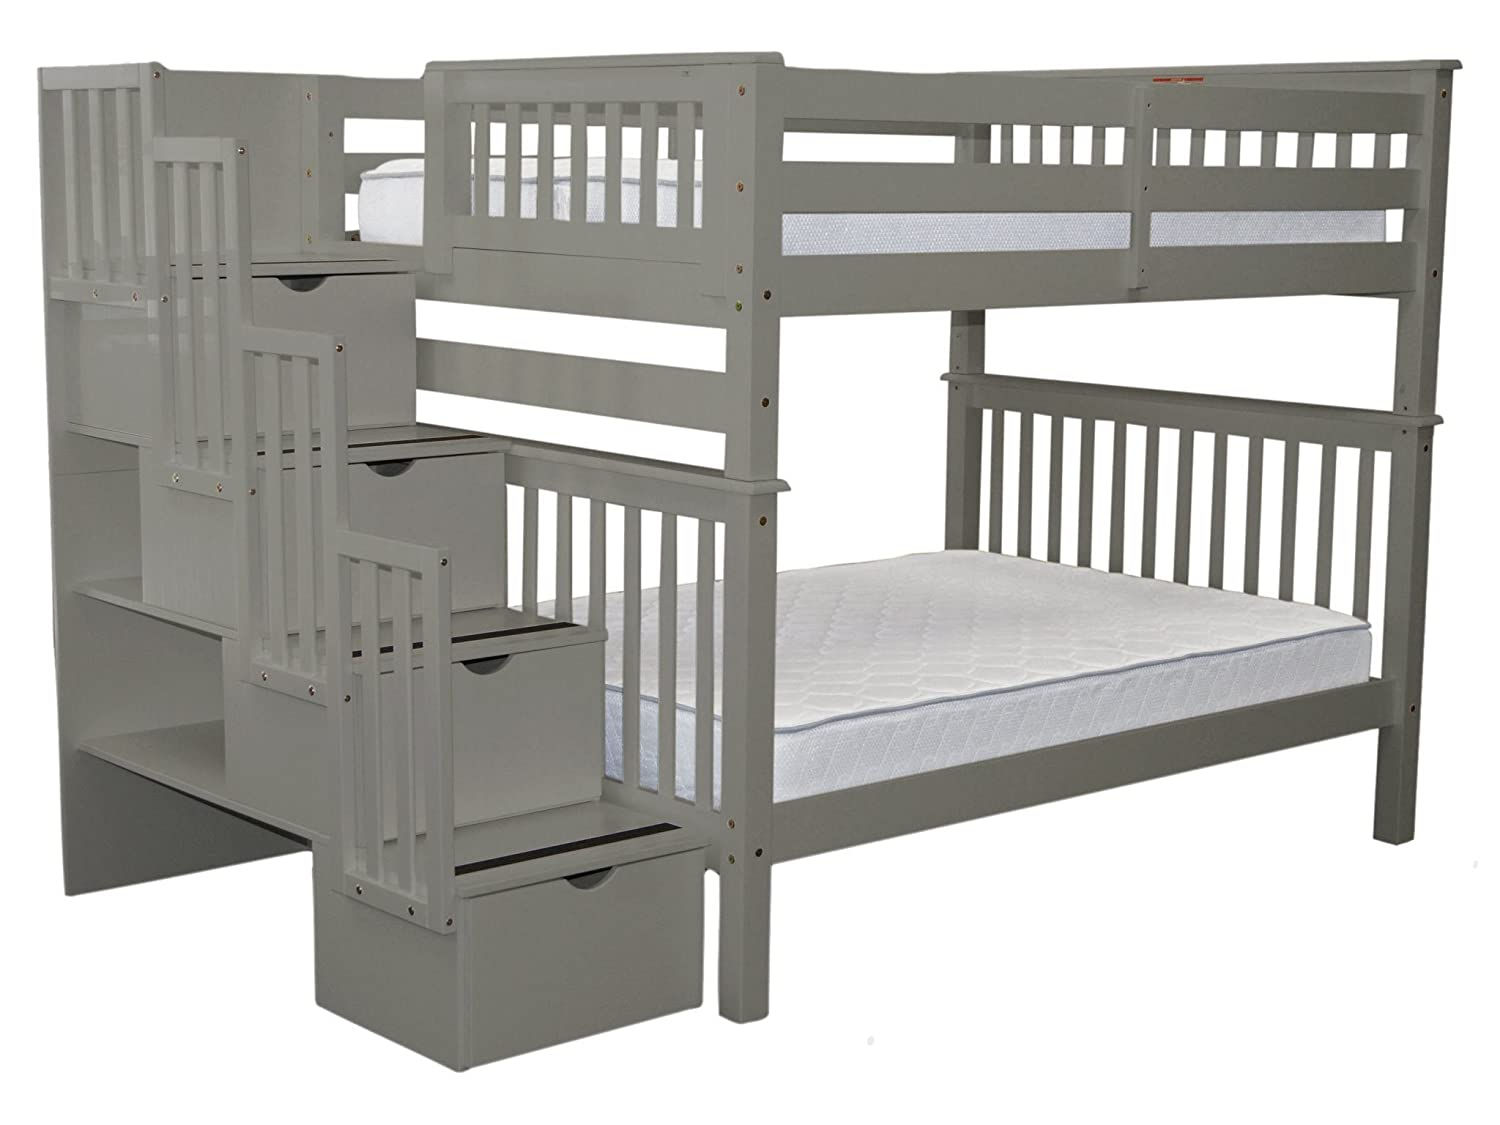 Bedz King Stairway Bunk Beds Full over Full with 4 Drawers in the Steps, Gray